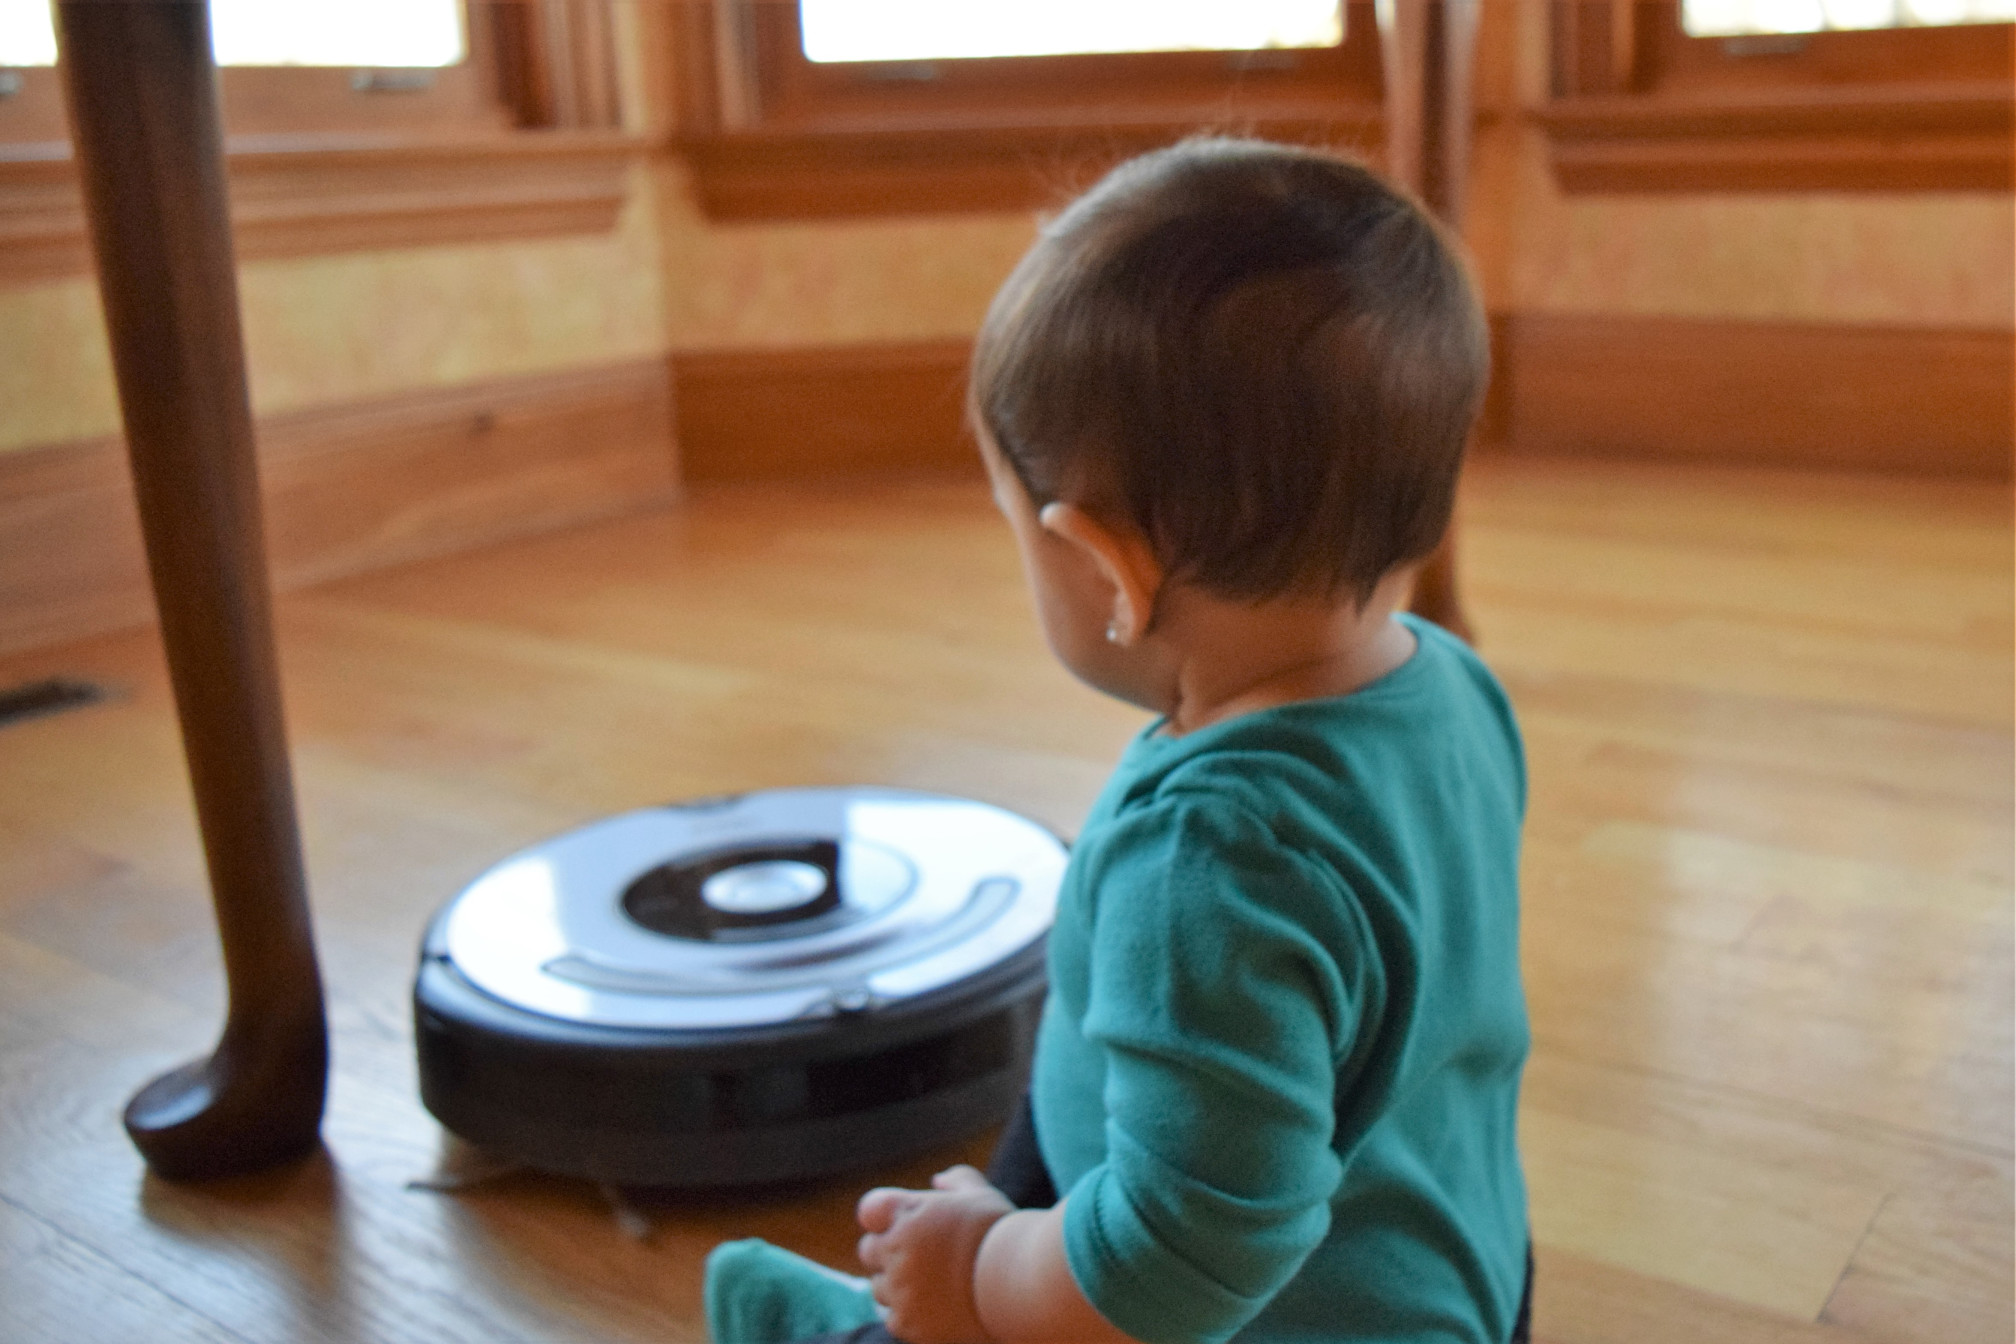 Smart Cleaning With A Roomba Vacuum